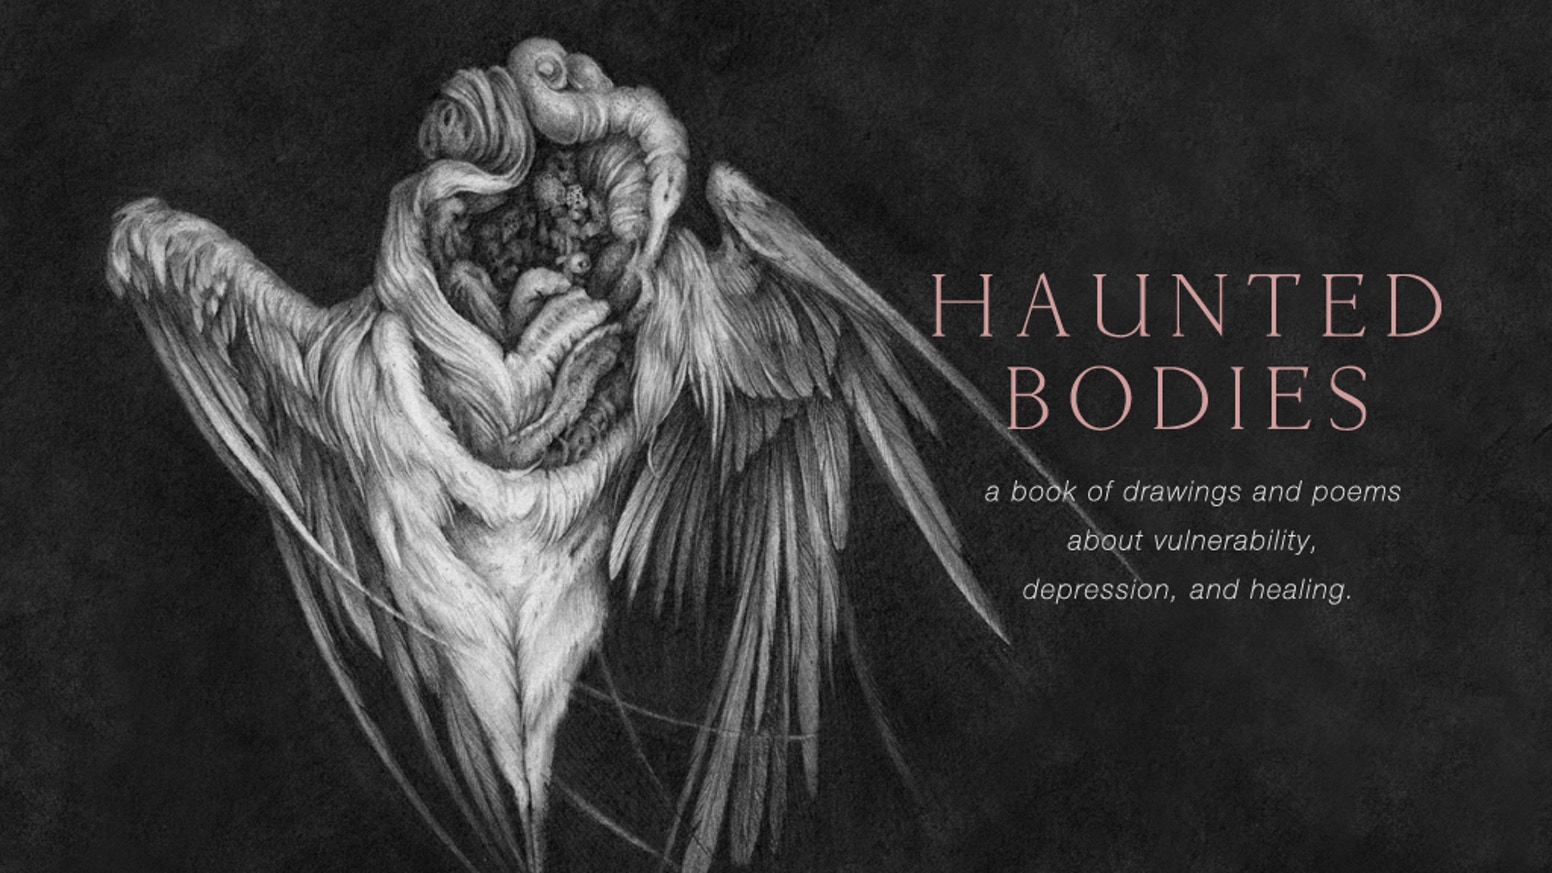 A hardcover collection of vulnerable drawings and poetry about depression and healing, drawn and written by artist Christina Mrozik.